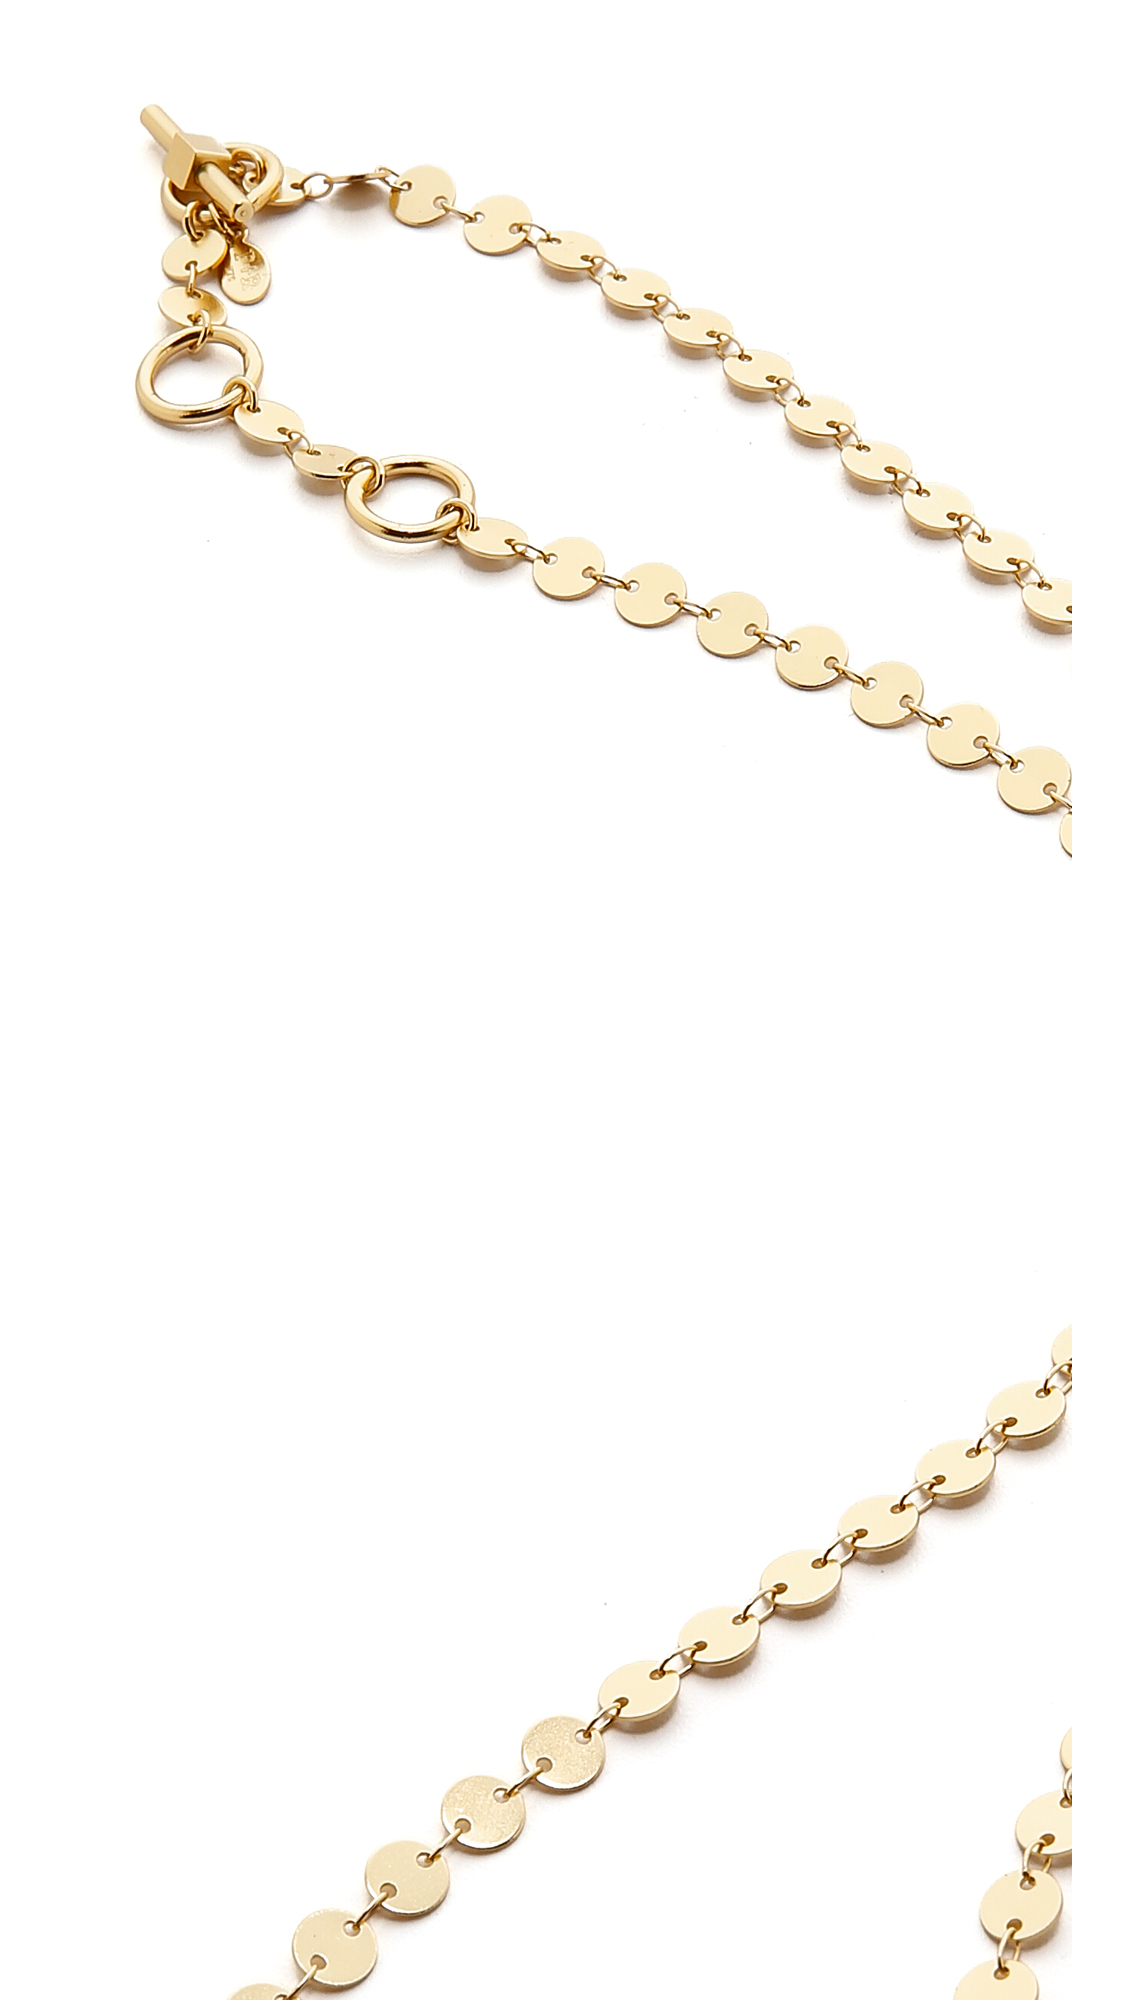 Phyllis + Rosie The Linett Necklace - Gold in Metallic